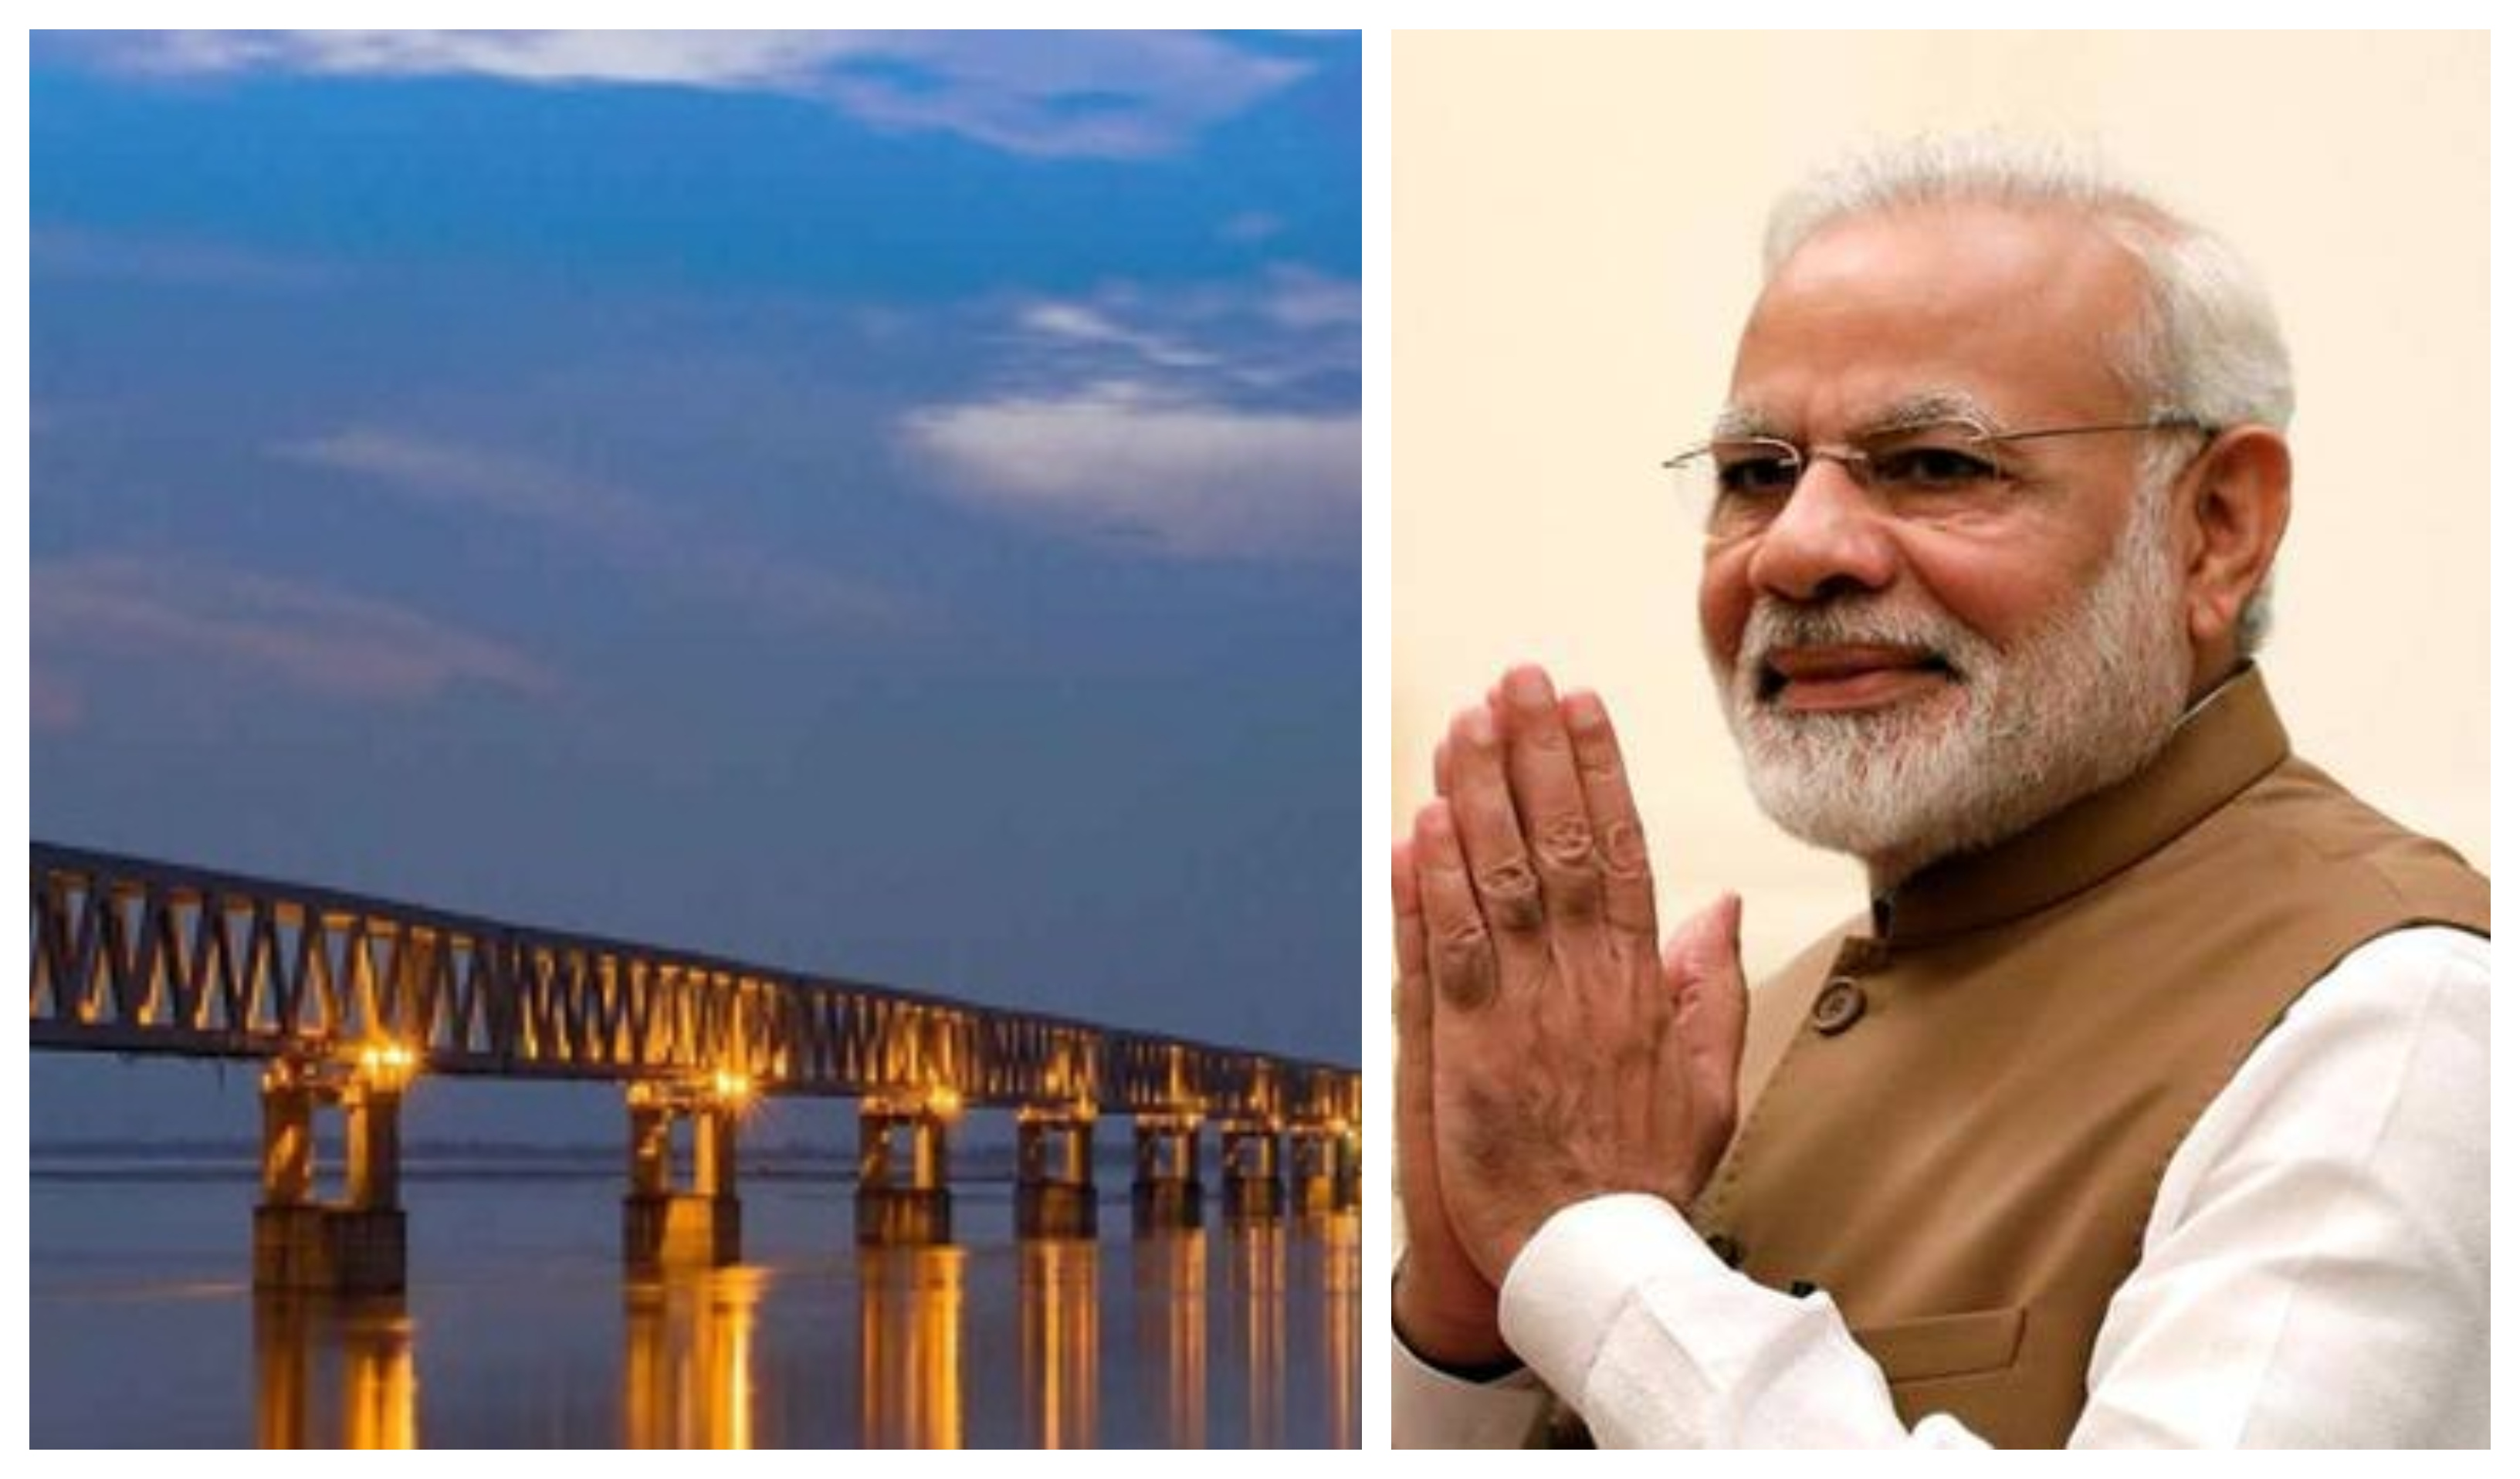 Prime Minister Narendra Modi to inaugurate the country's longest railroad bridge